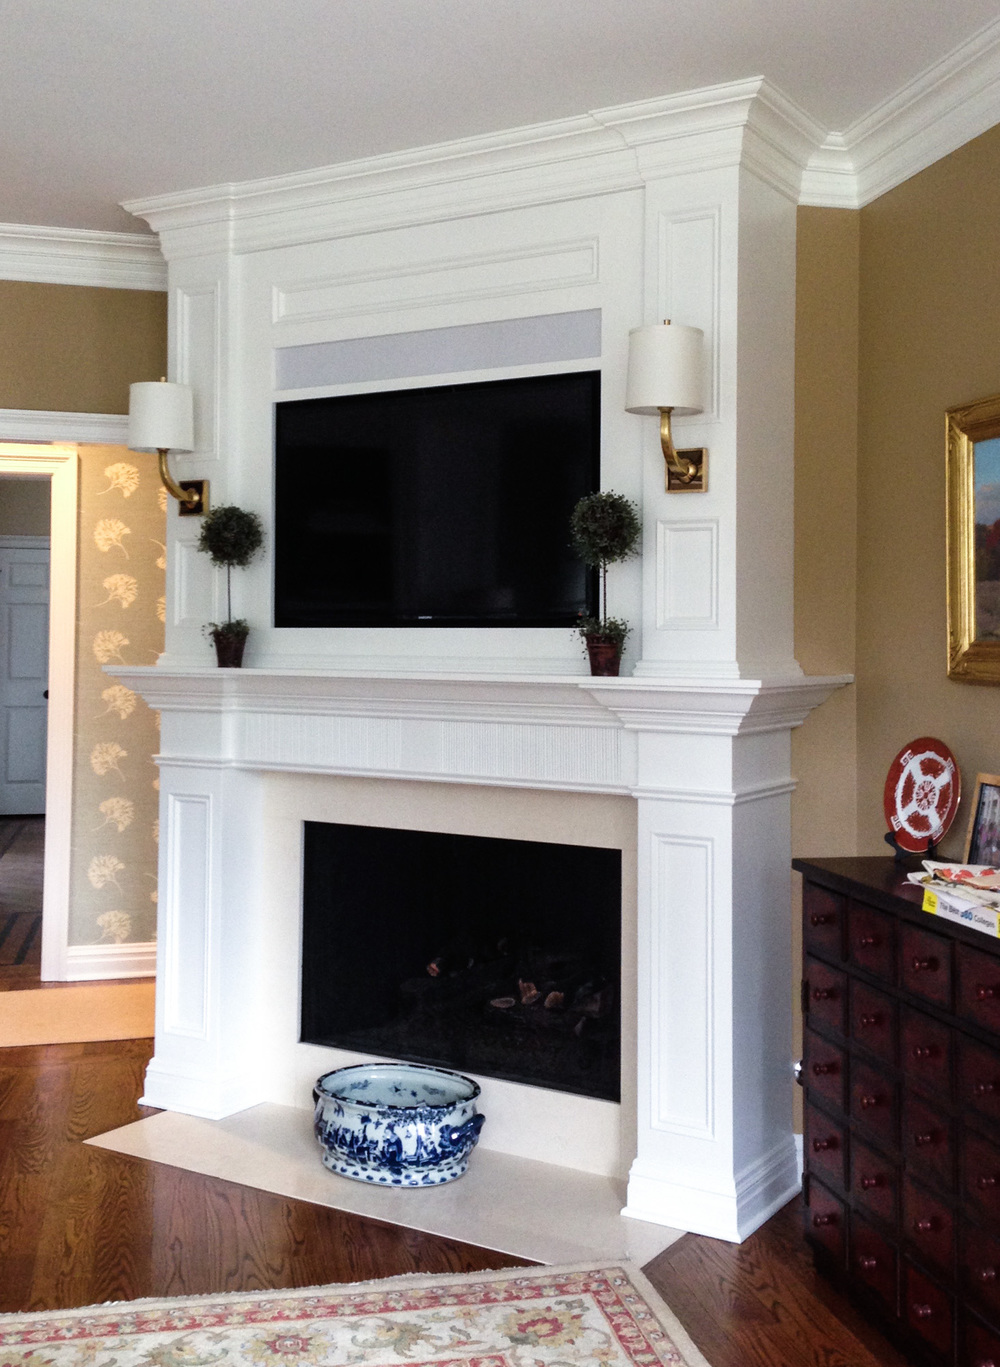 Custom Built-In Fireplace Surround with TV & Lighting